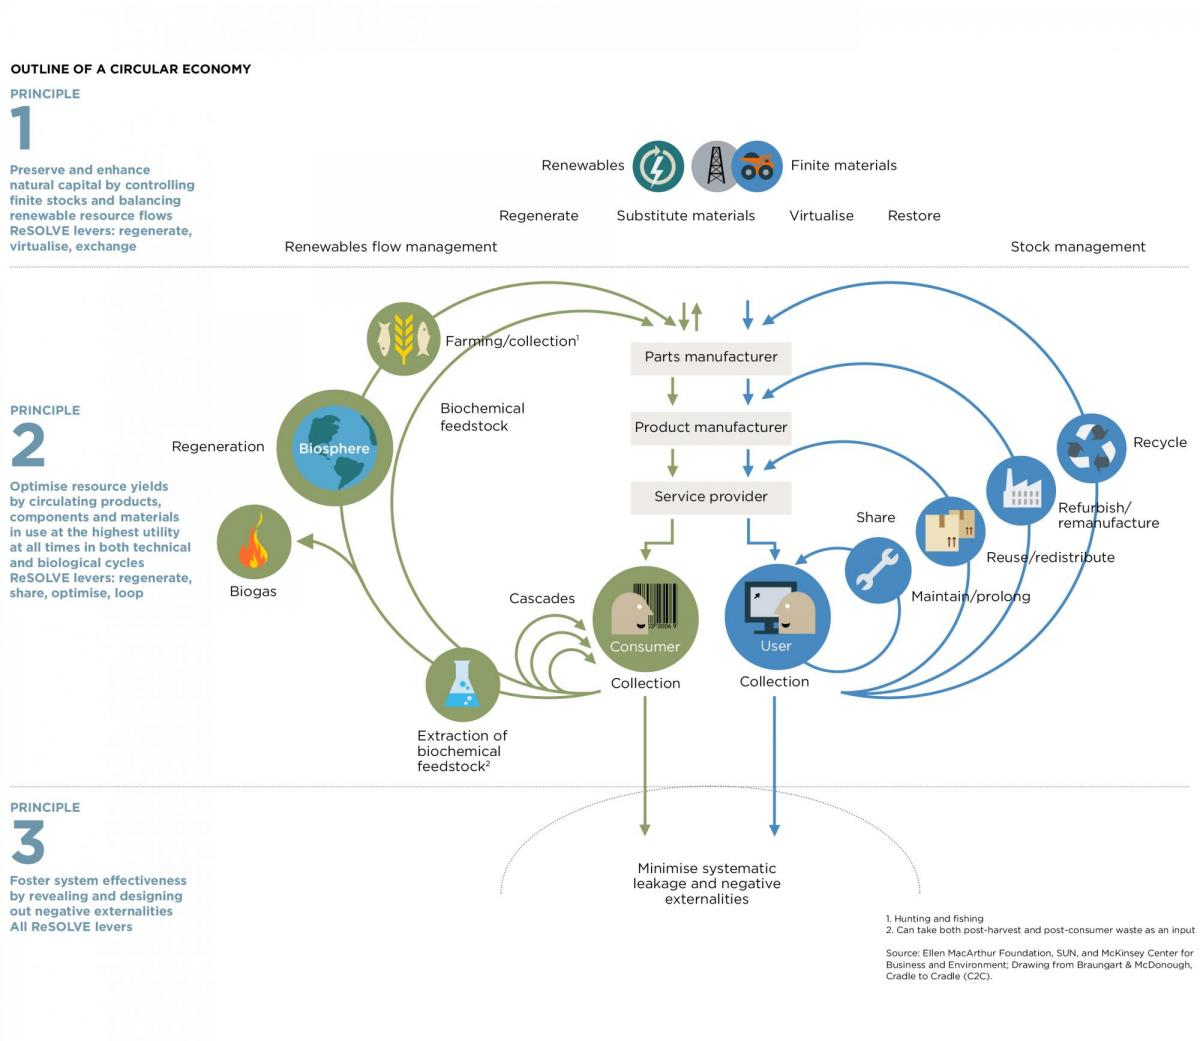 Outline of a circular economy diagram